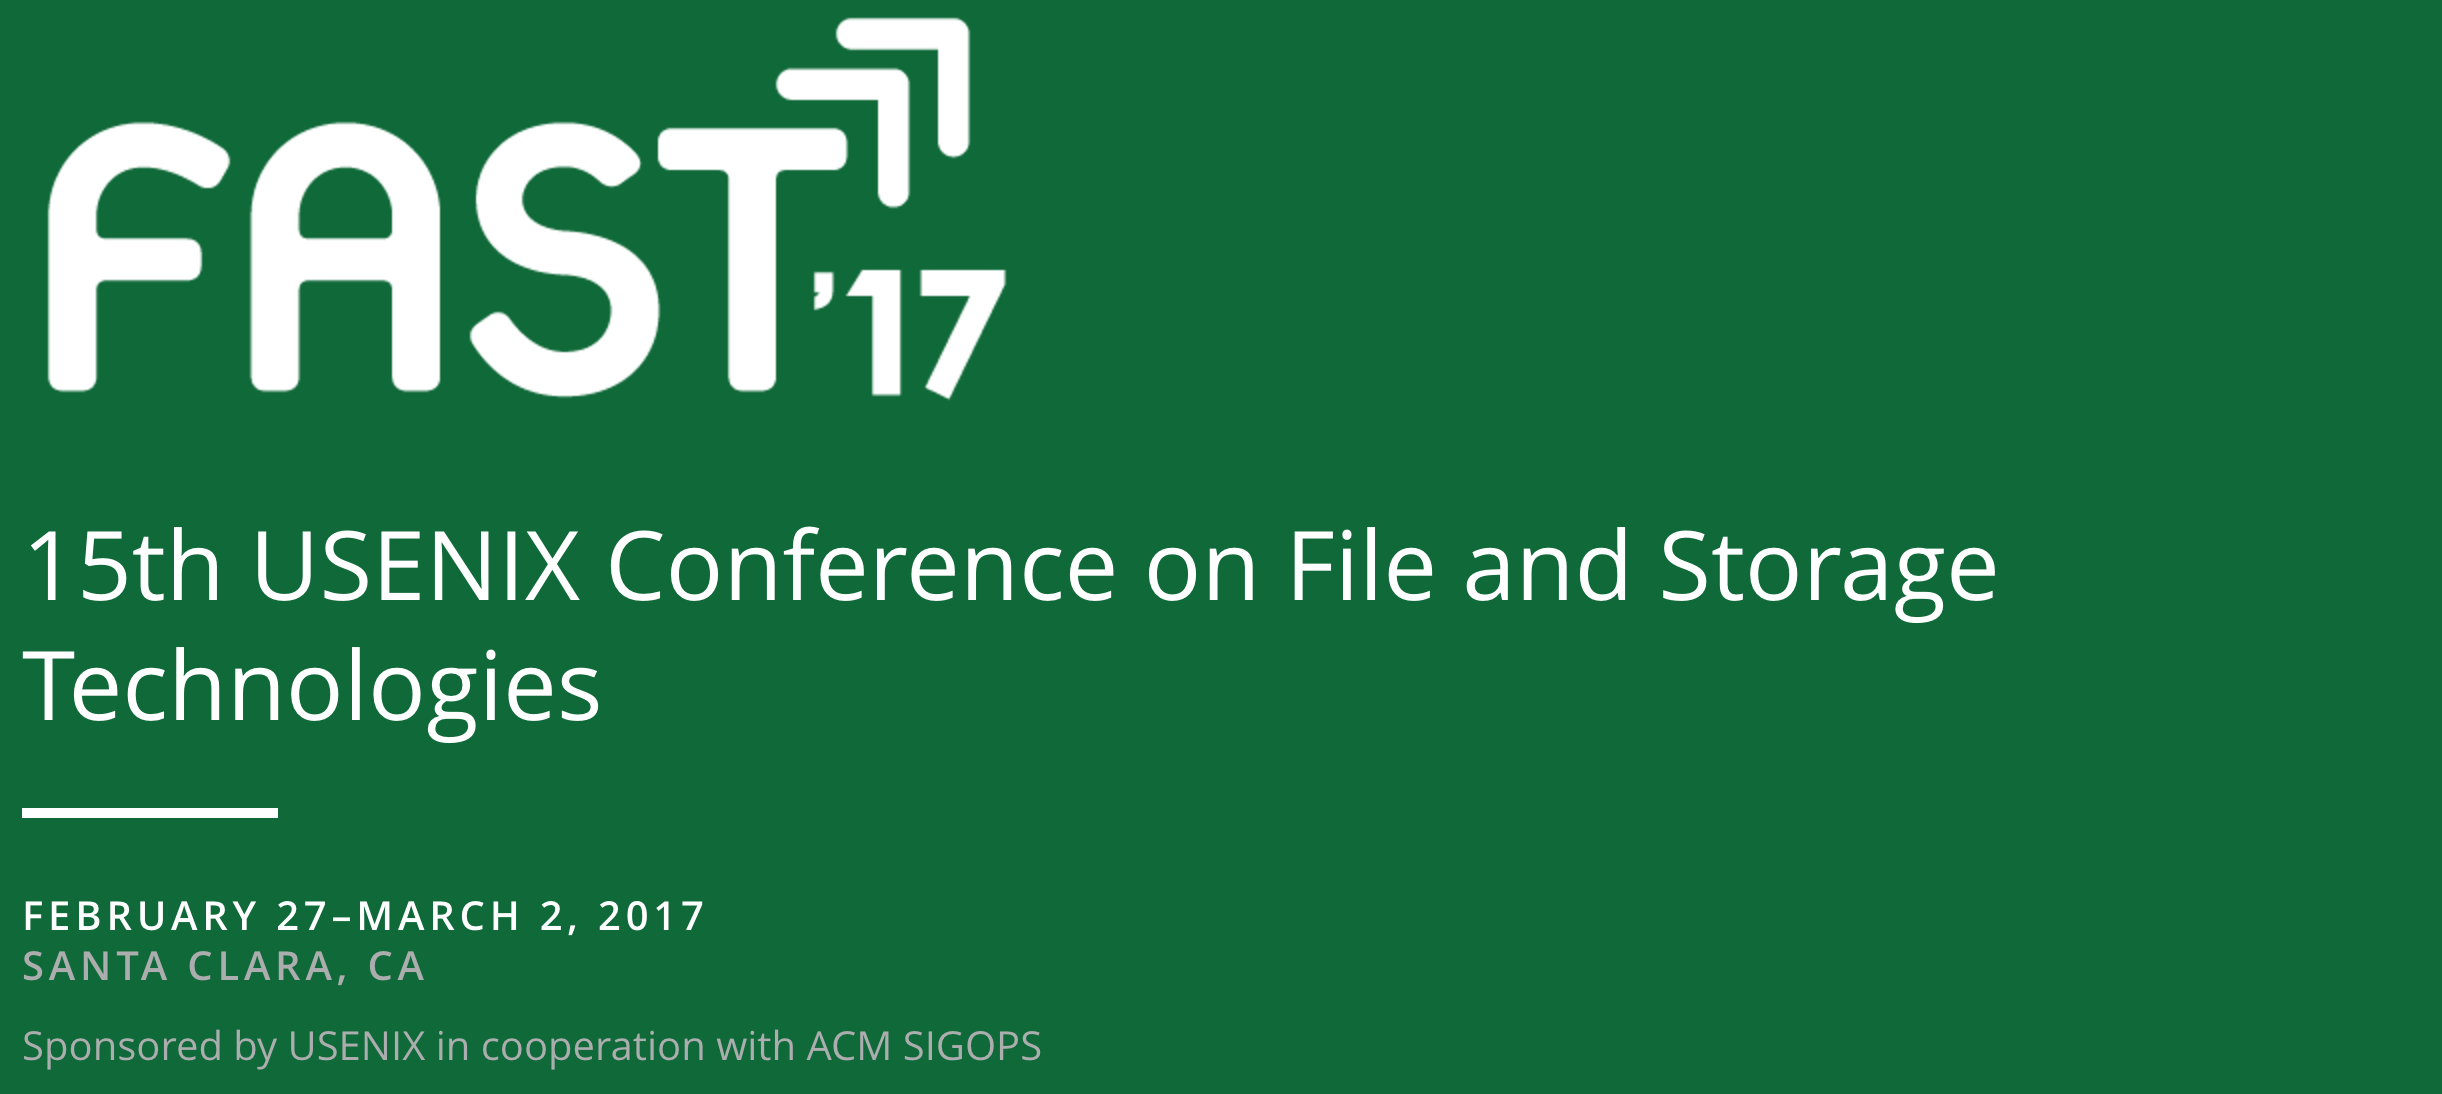 Usenix Conference on File and Storage Technologies - Fast 2017